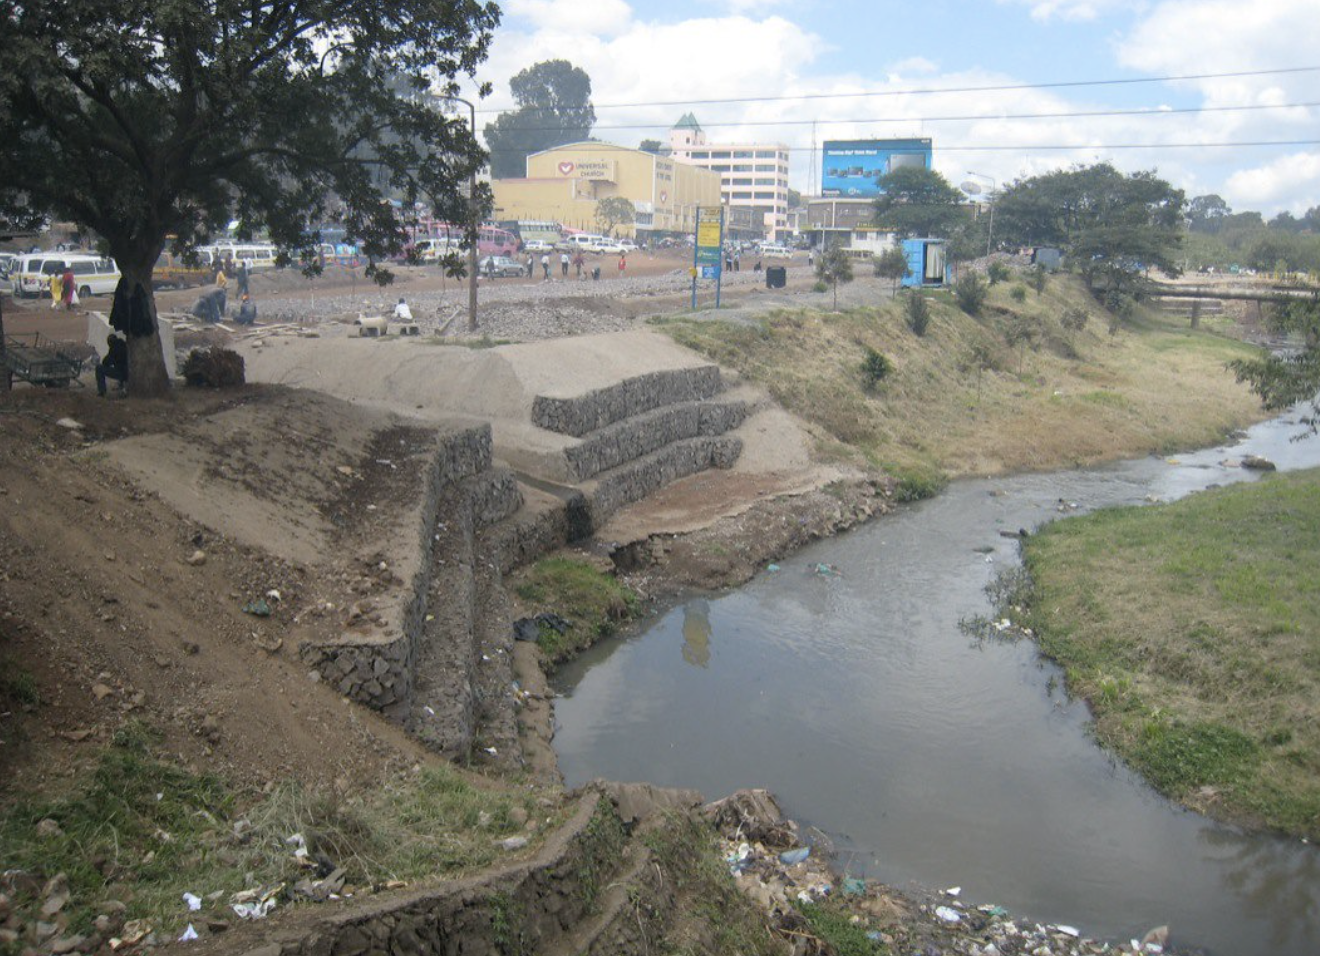 The Nairobi River looking west as it flows through the city, October 30, 2007 (Photo by yusunkwon) Creative Commons license via Flickr